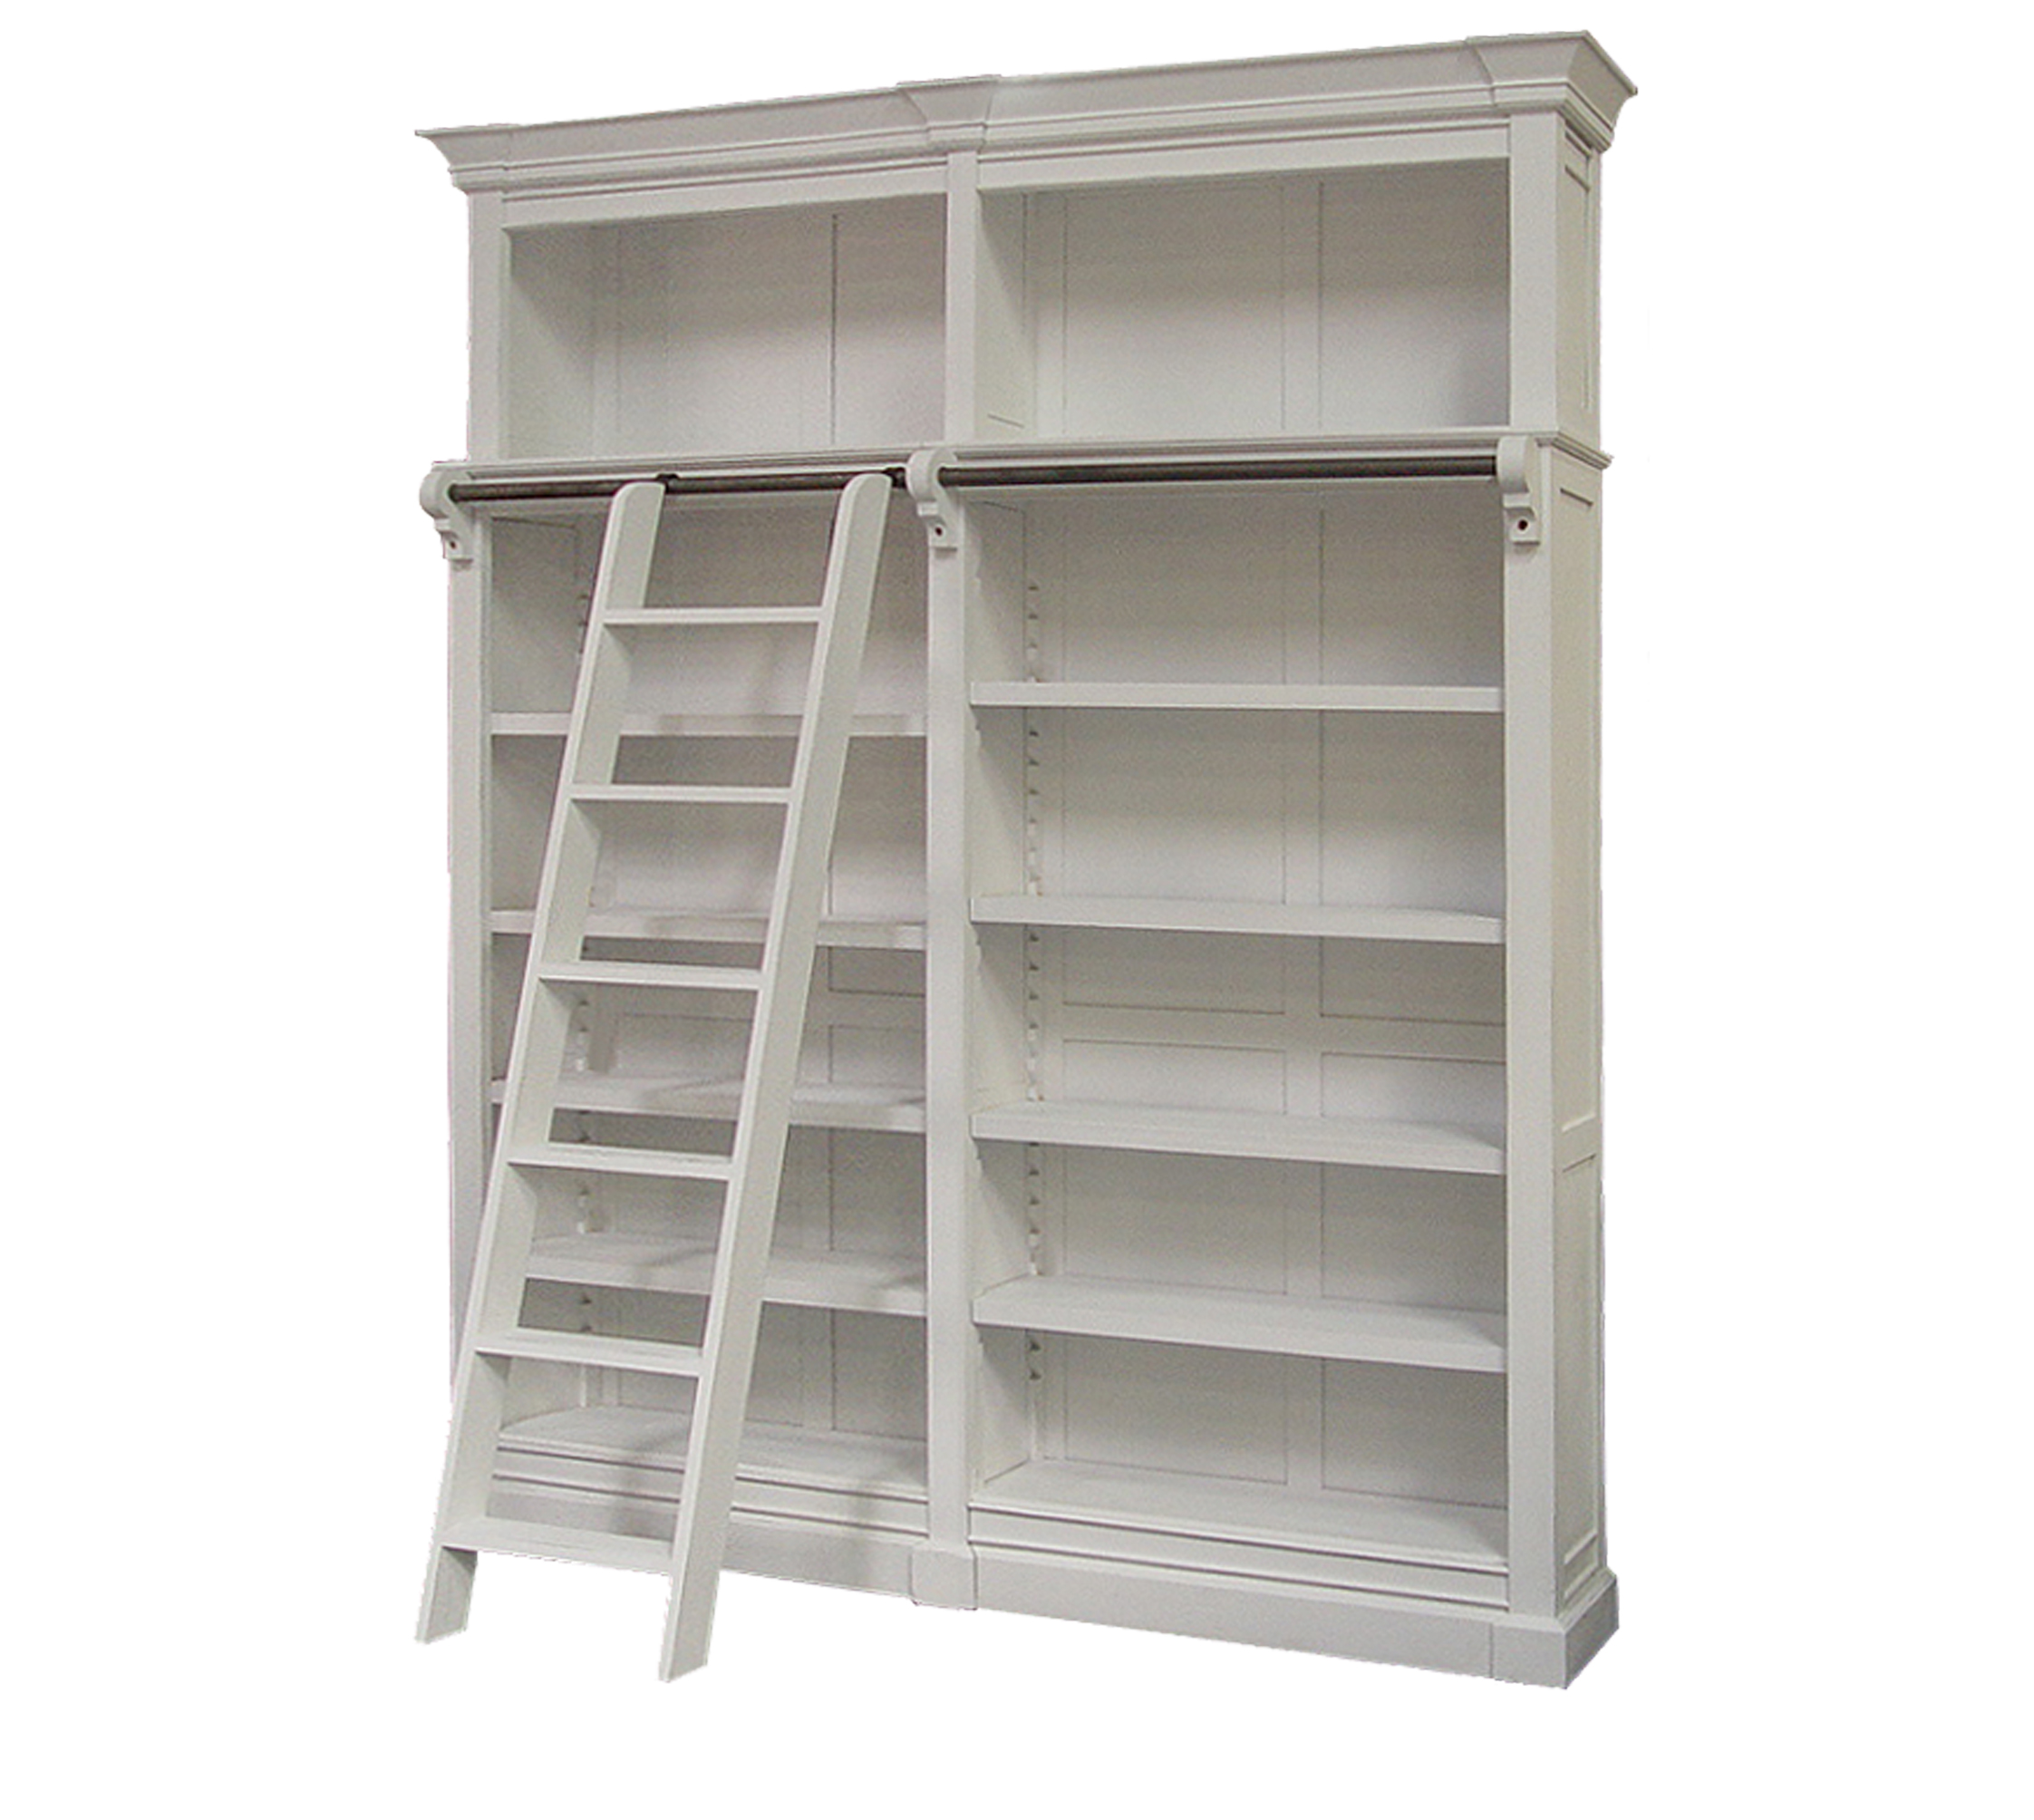 Furniture Packages For Sale Perth Furniture Shops Amp Stores